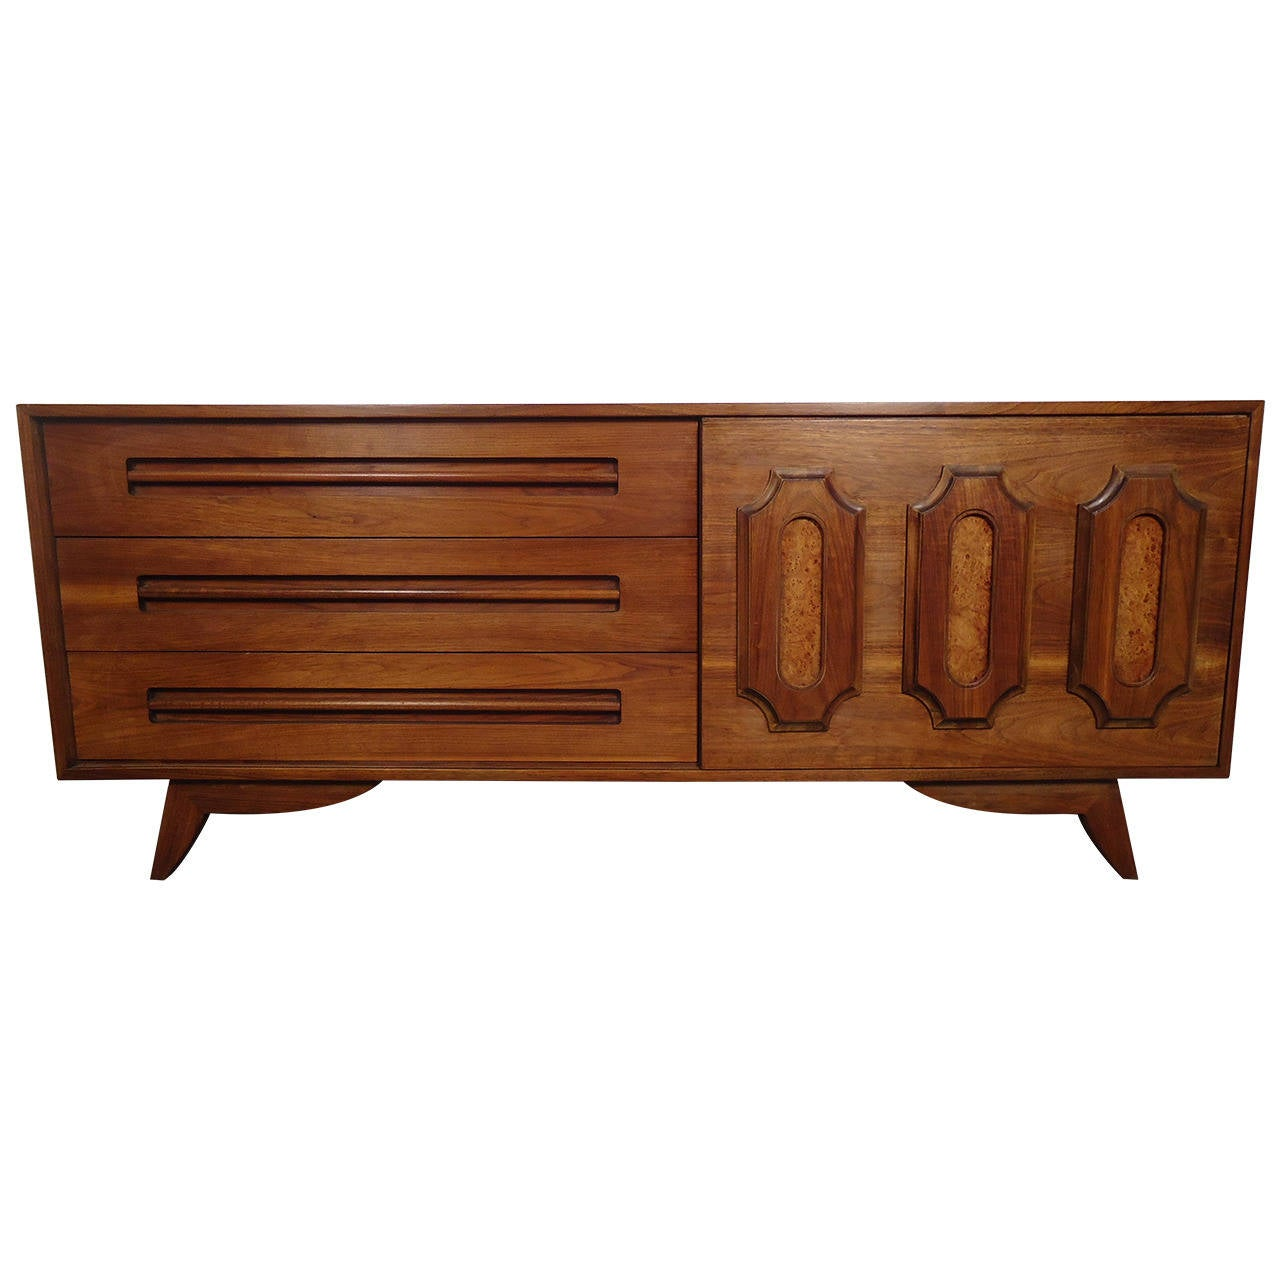 Mid century modern walnut and burl wood dresser at 1stdibs for Mid century modern wood furniture